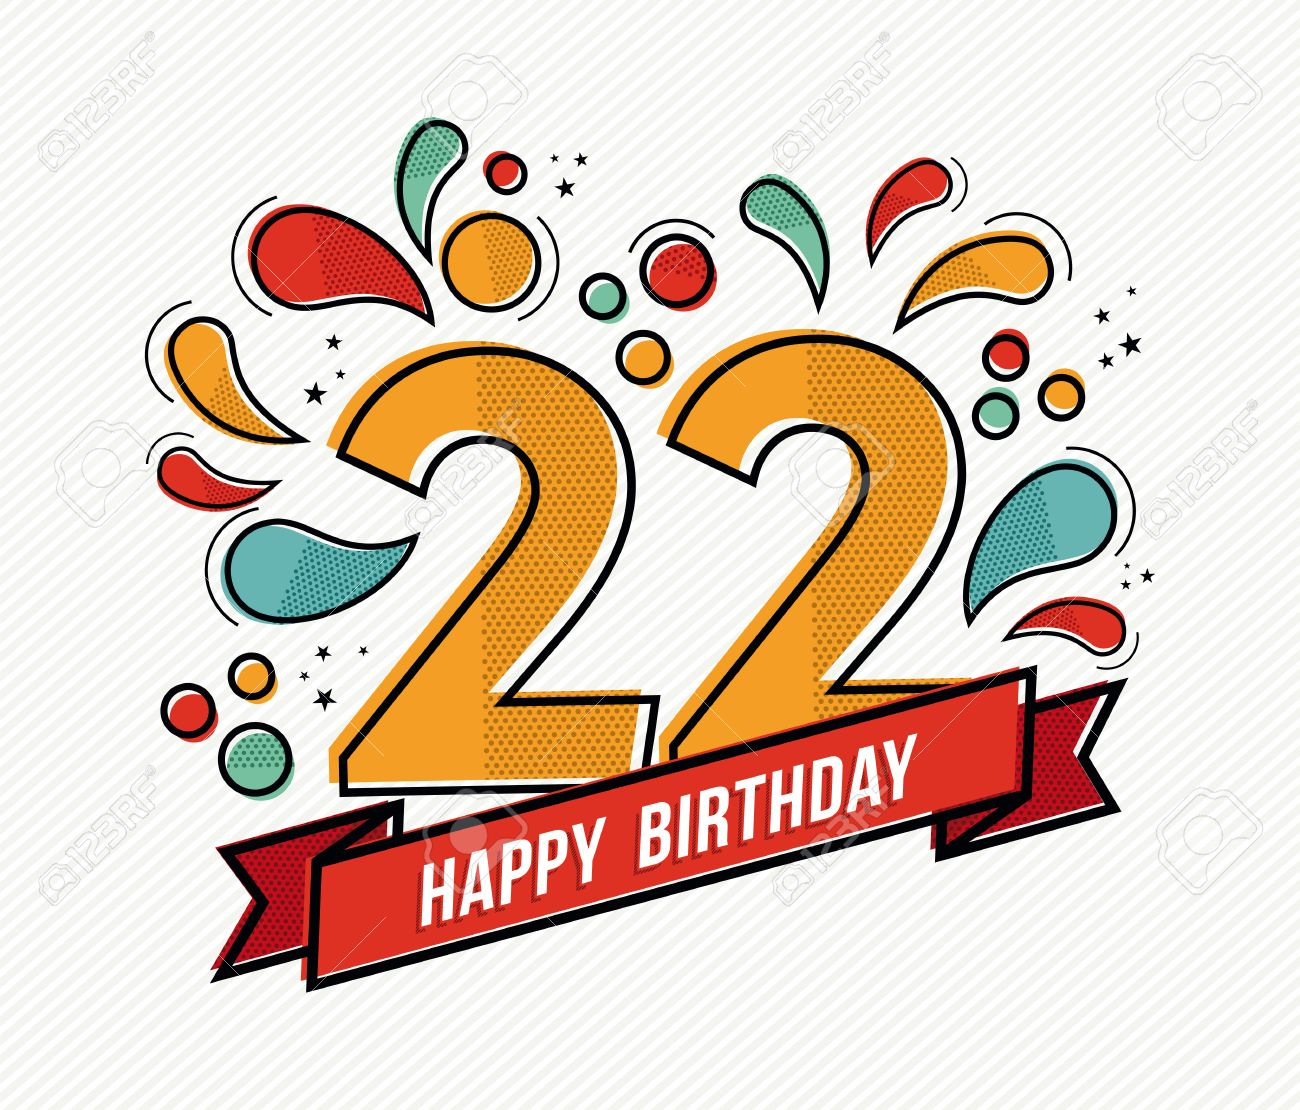 Happy Birthday Number 22 Greeting Card For Twenty Two Year In Modern Flat Line Art